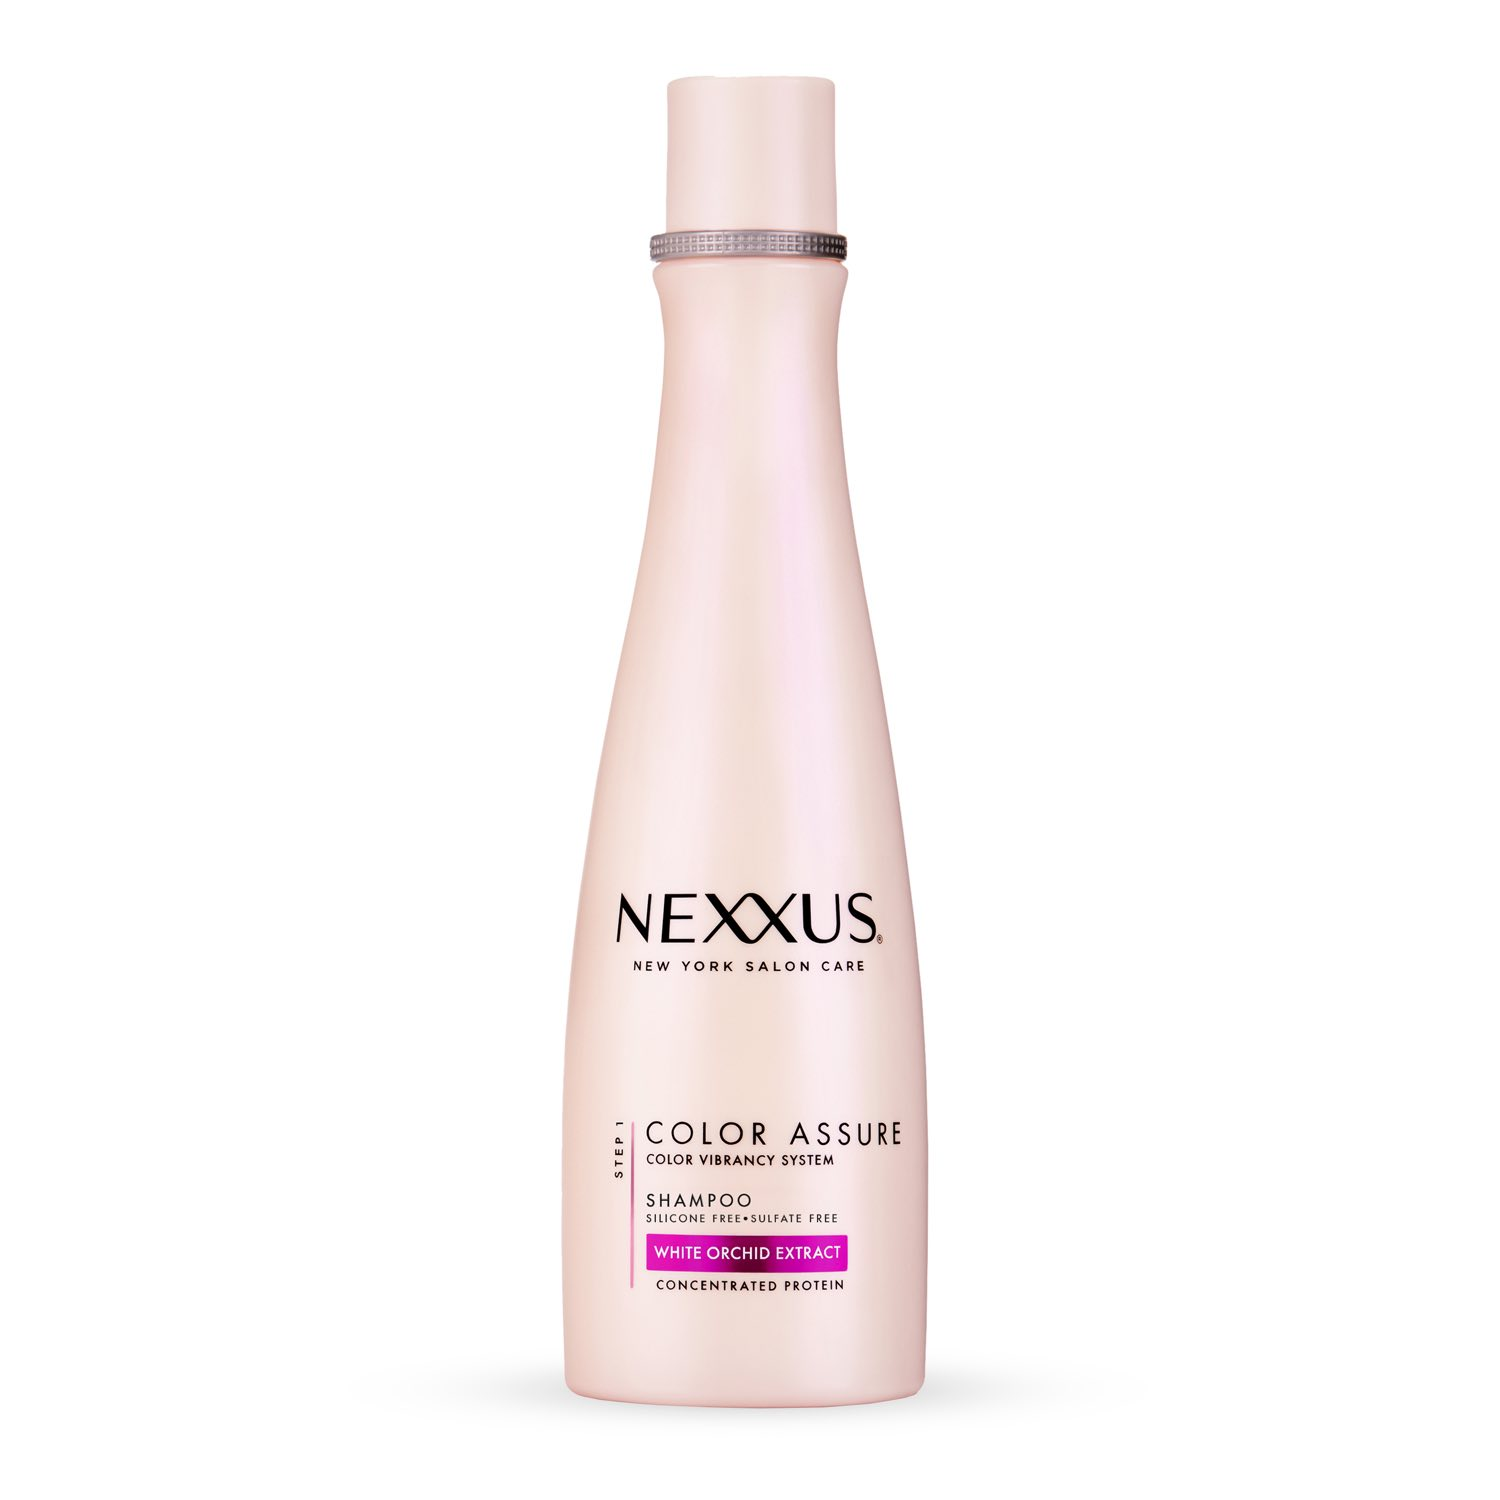 NEXXUS® COLOR ASSURE SHAMPOO FOR COLORED HAIR